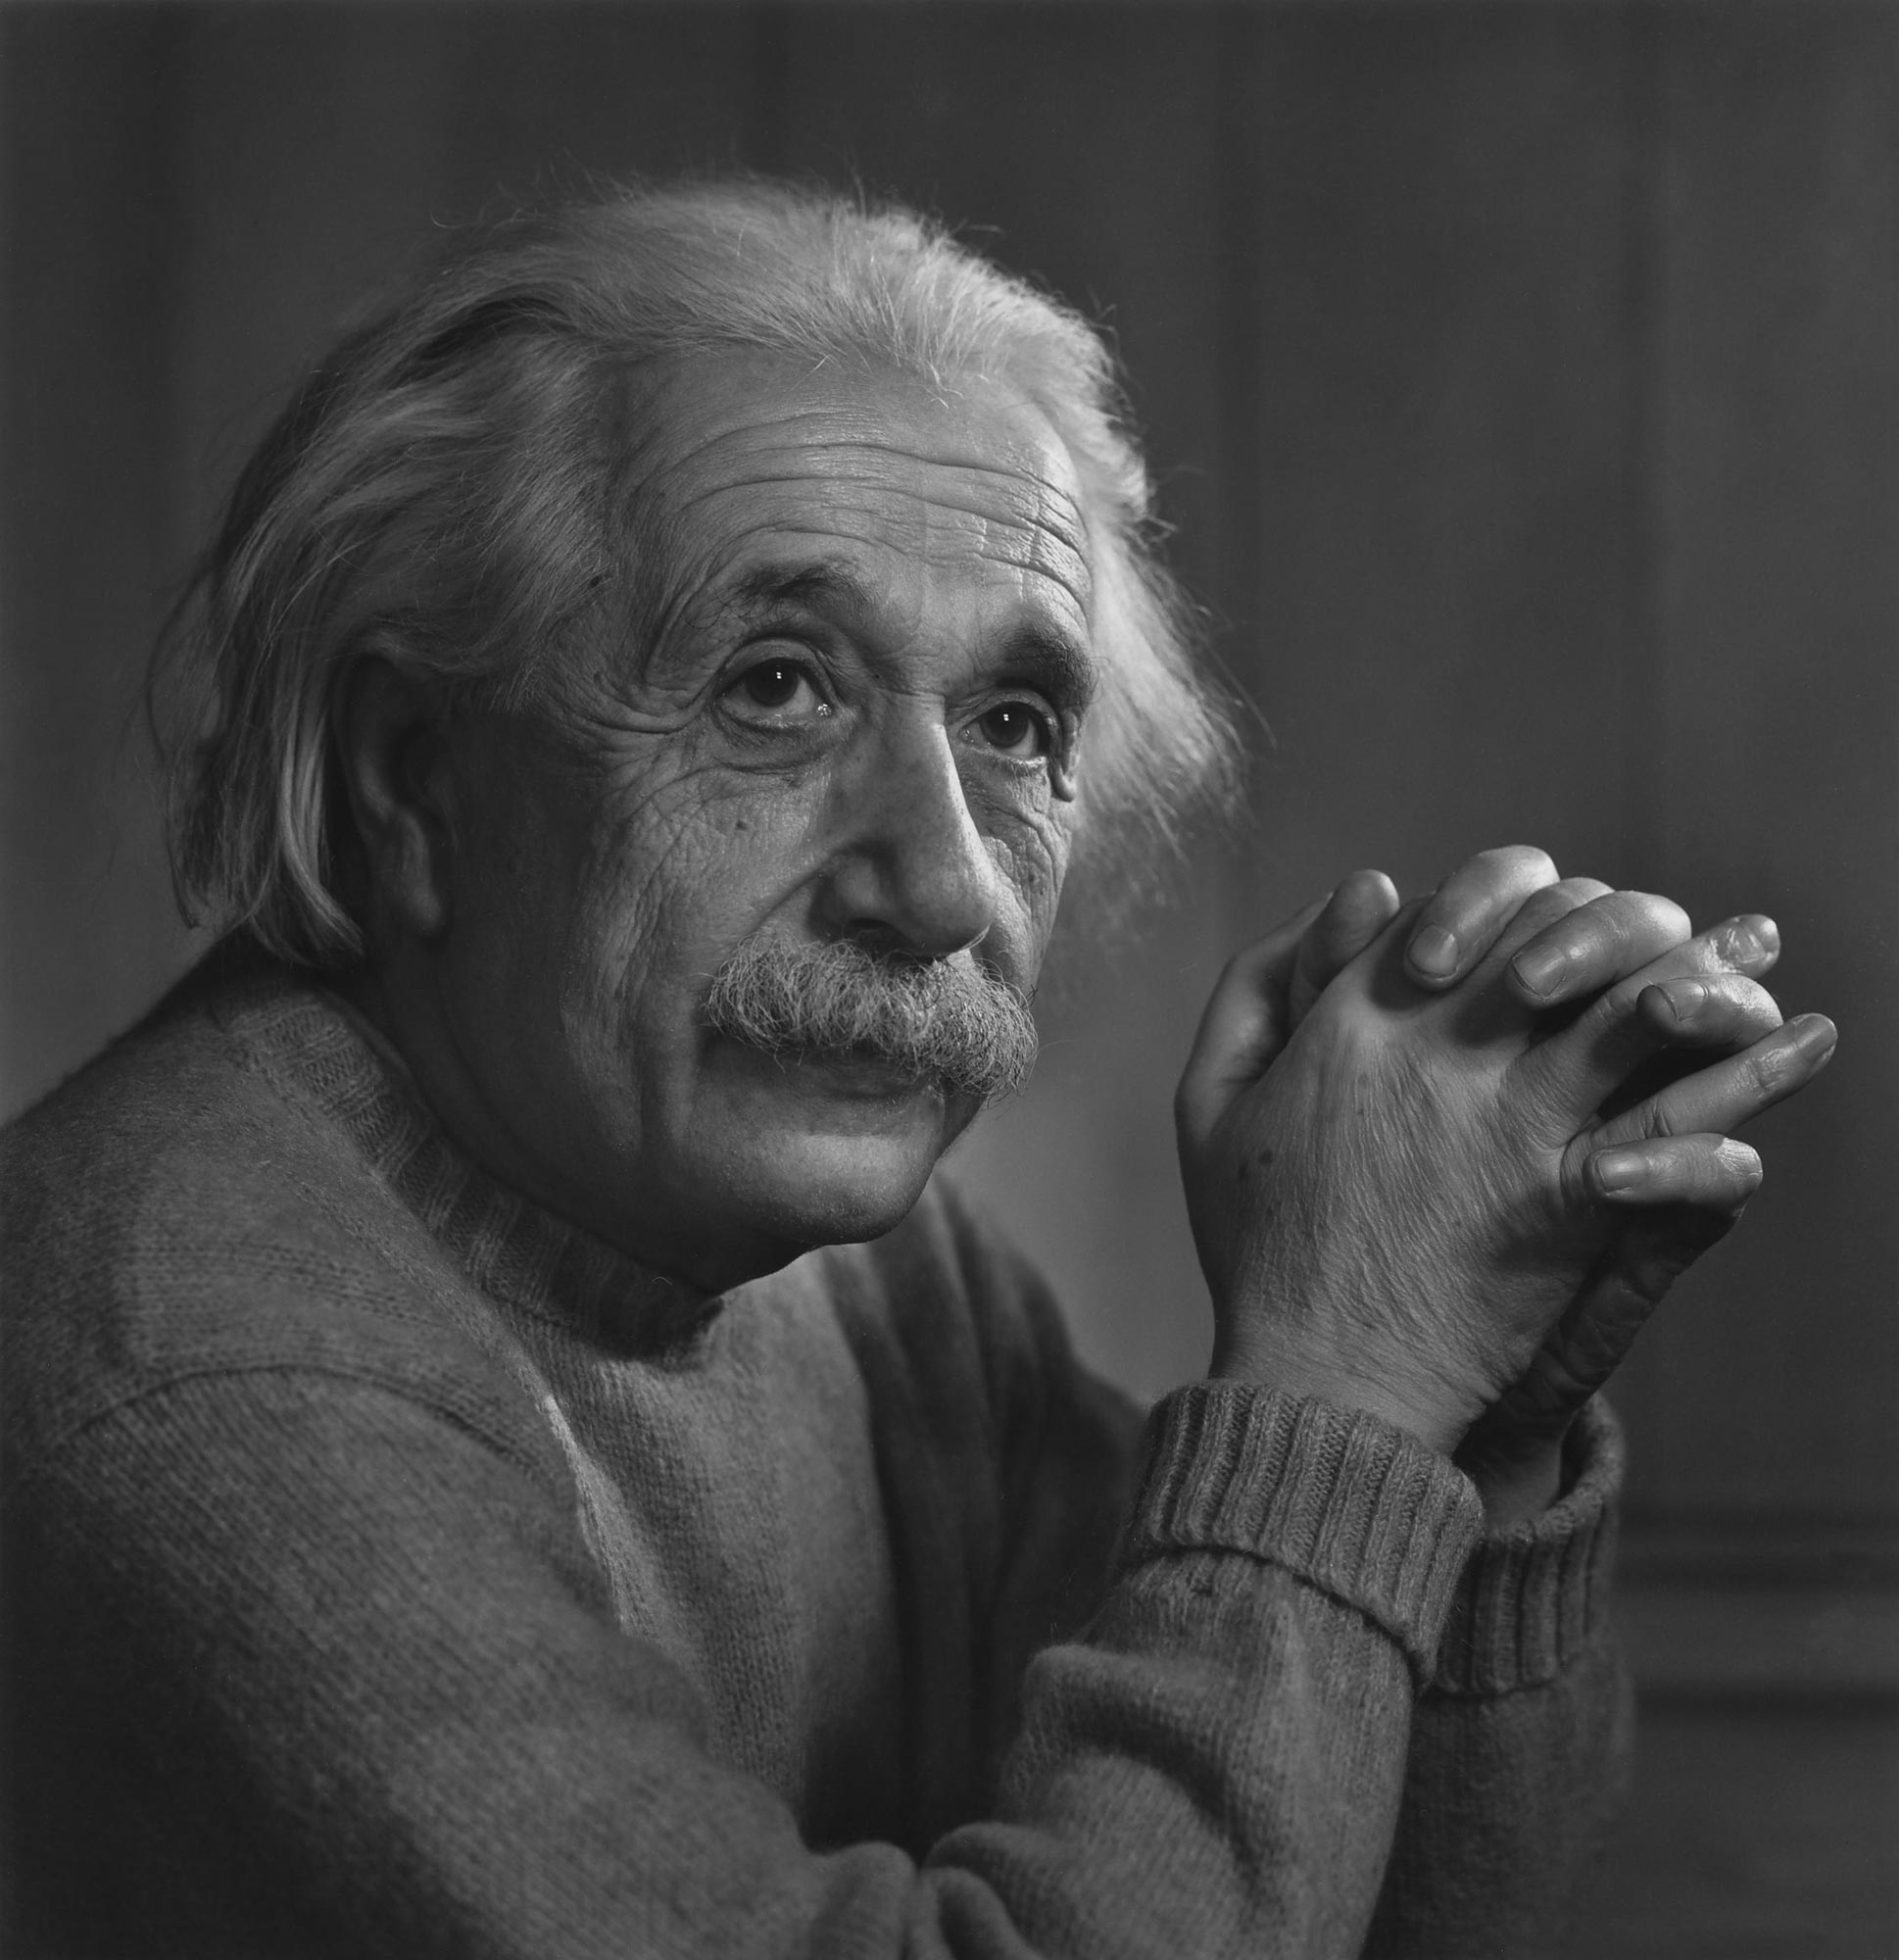 Albert einstein yousuf karsh - Albert einstein hd images ...